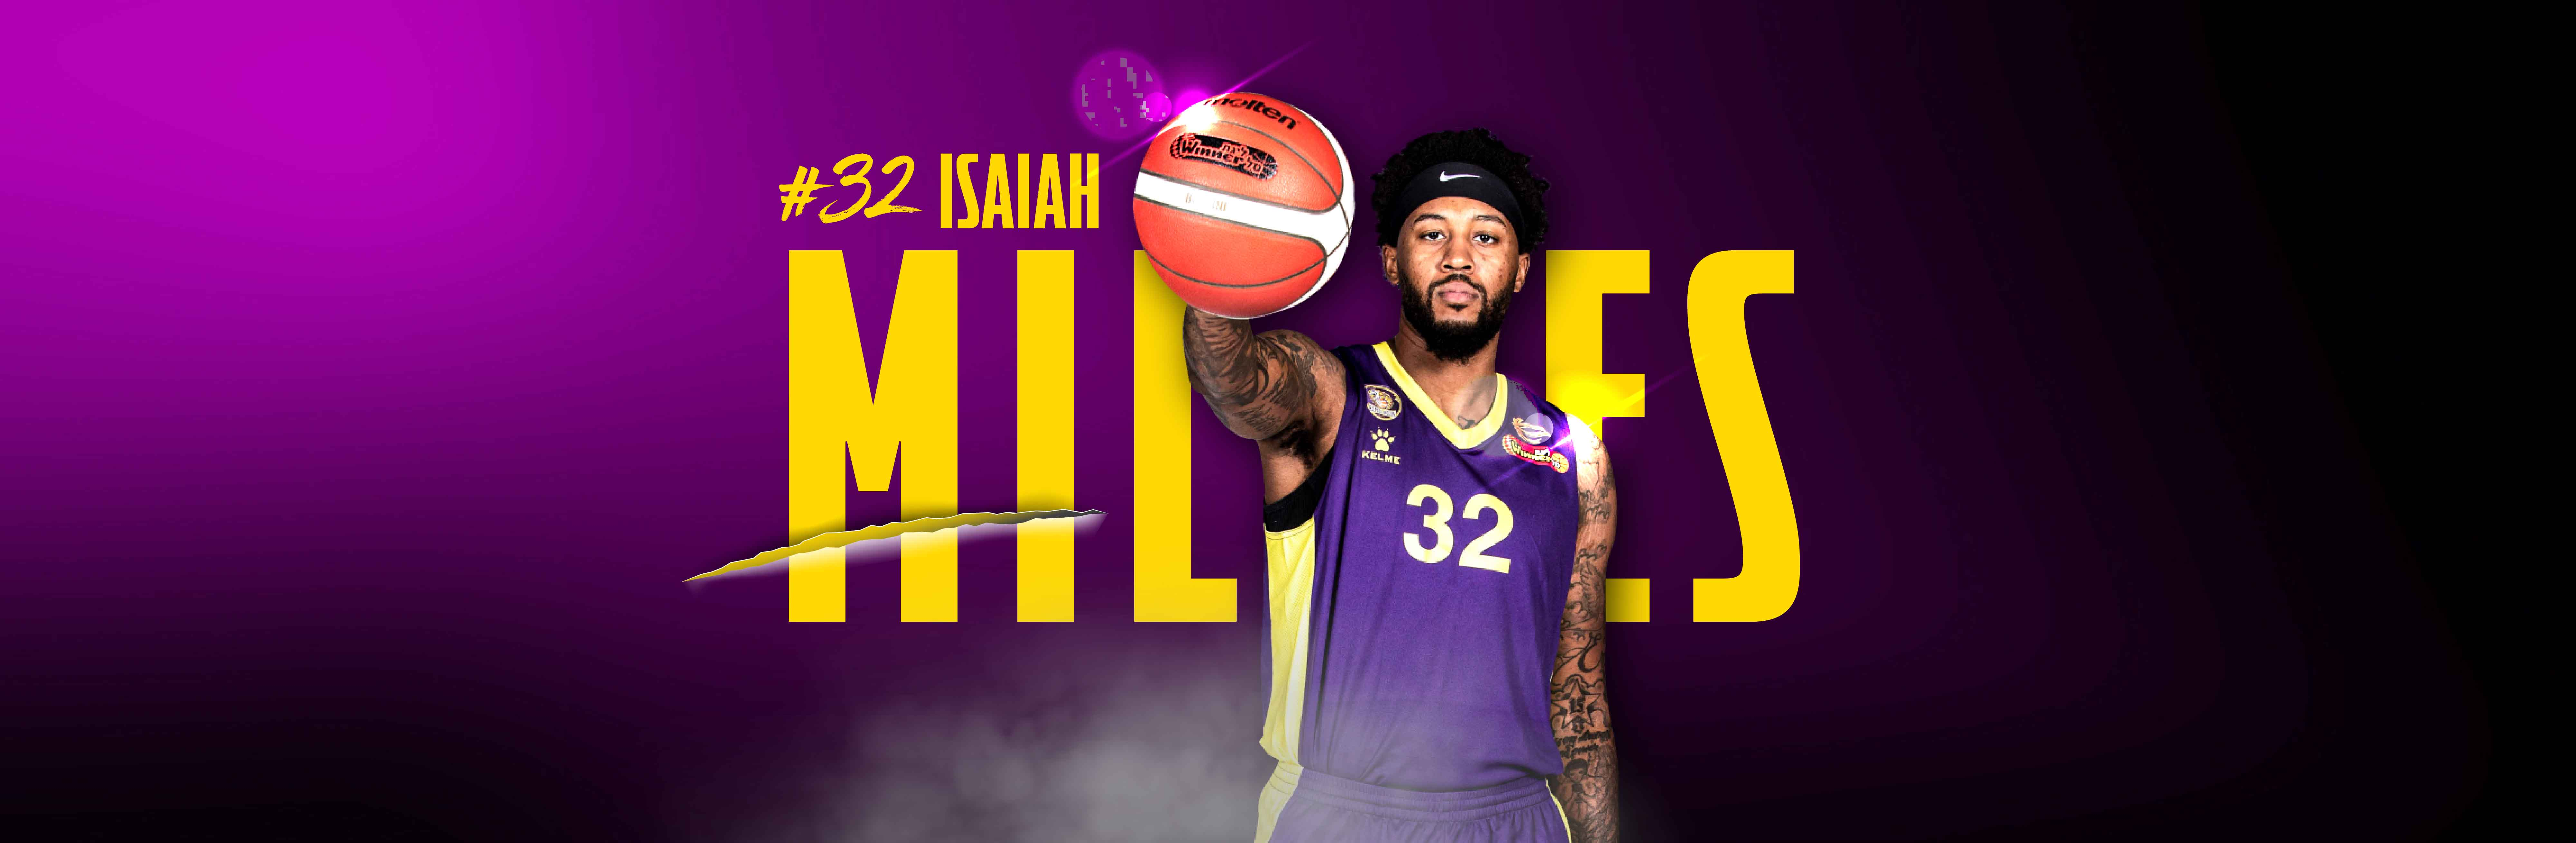 HH PLAYERS_isaiah miles